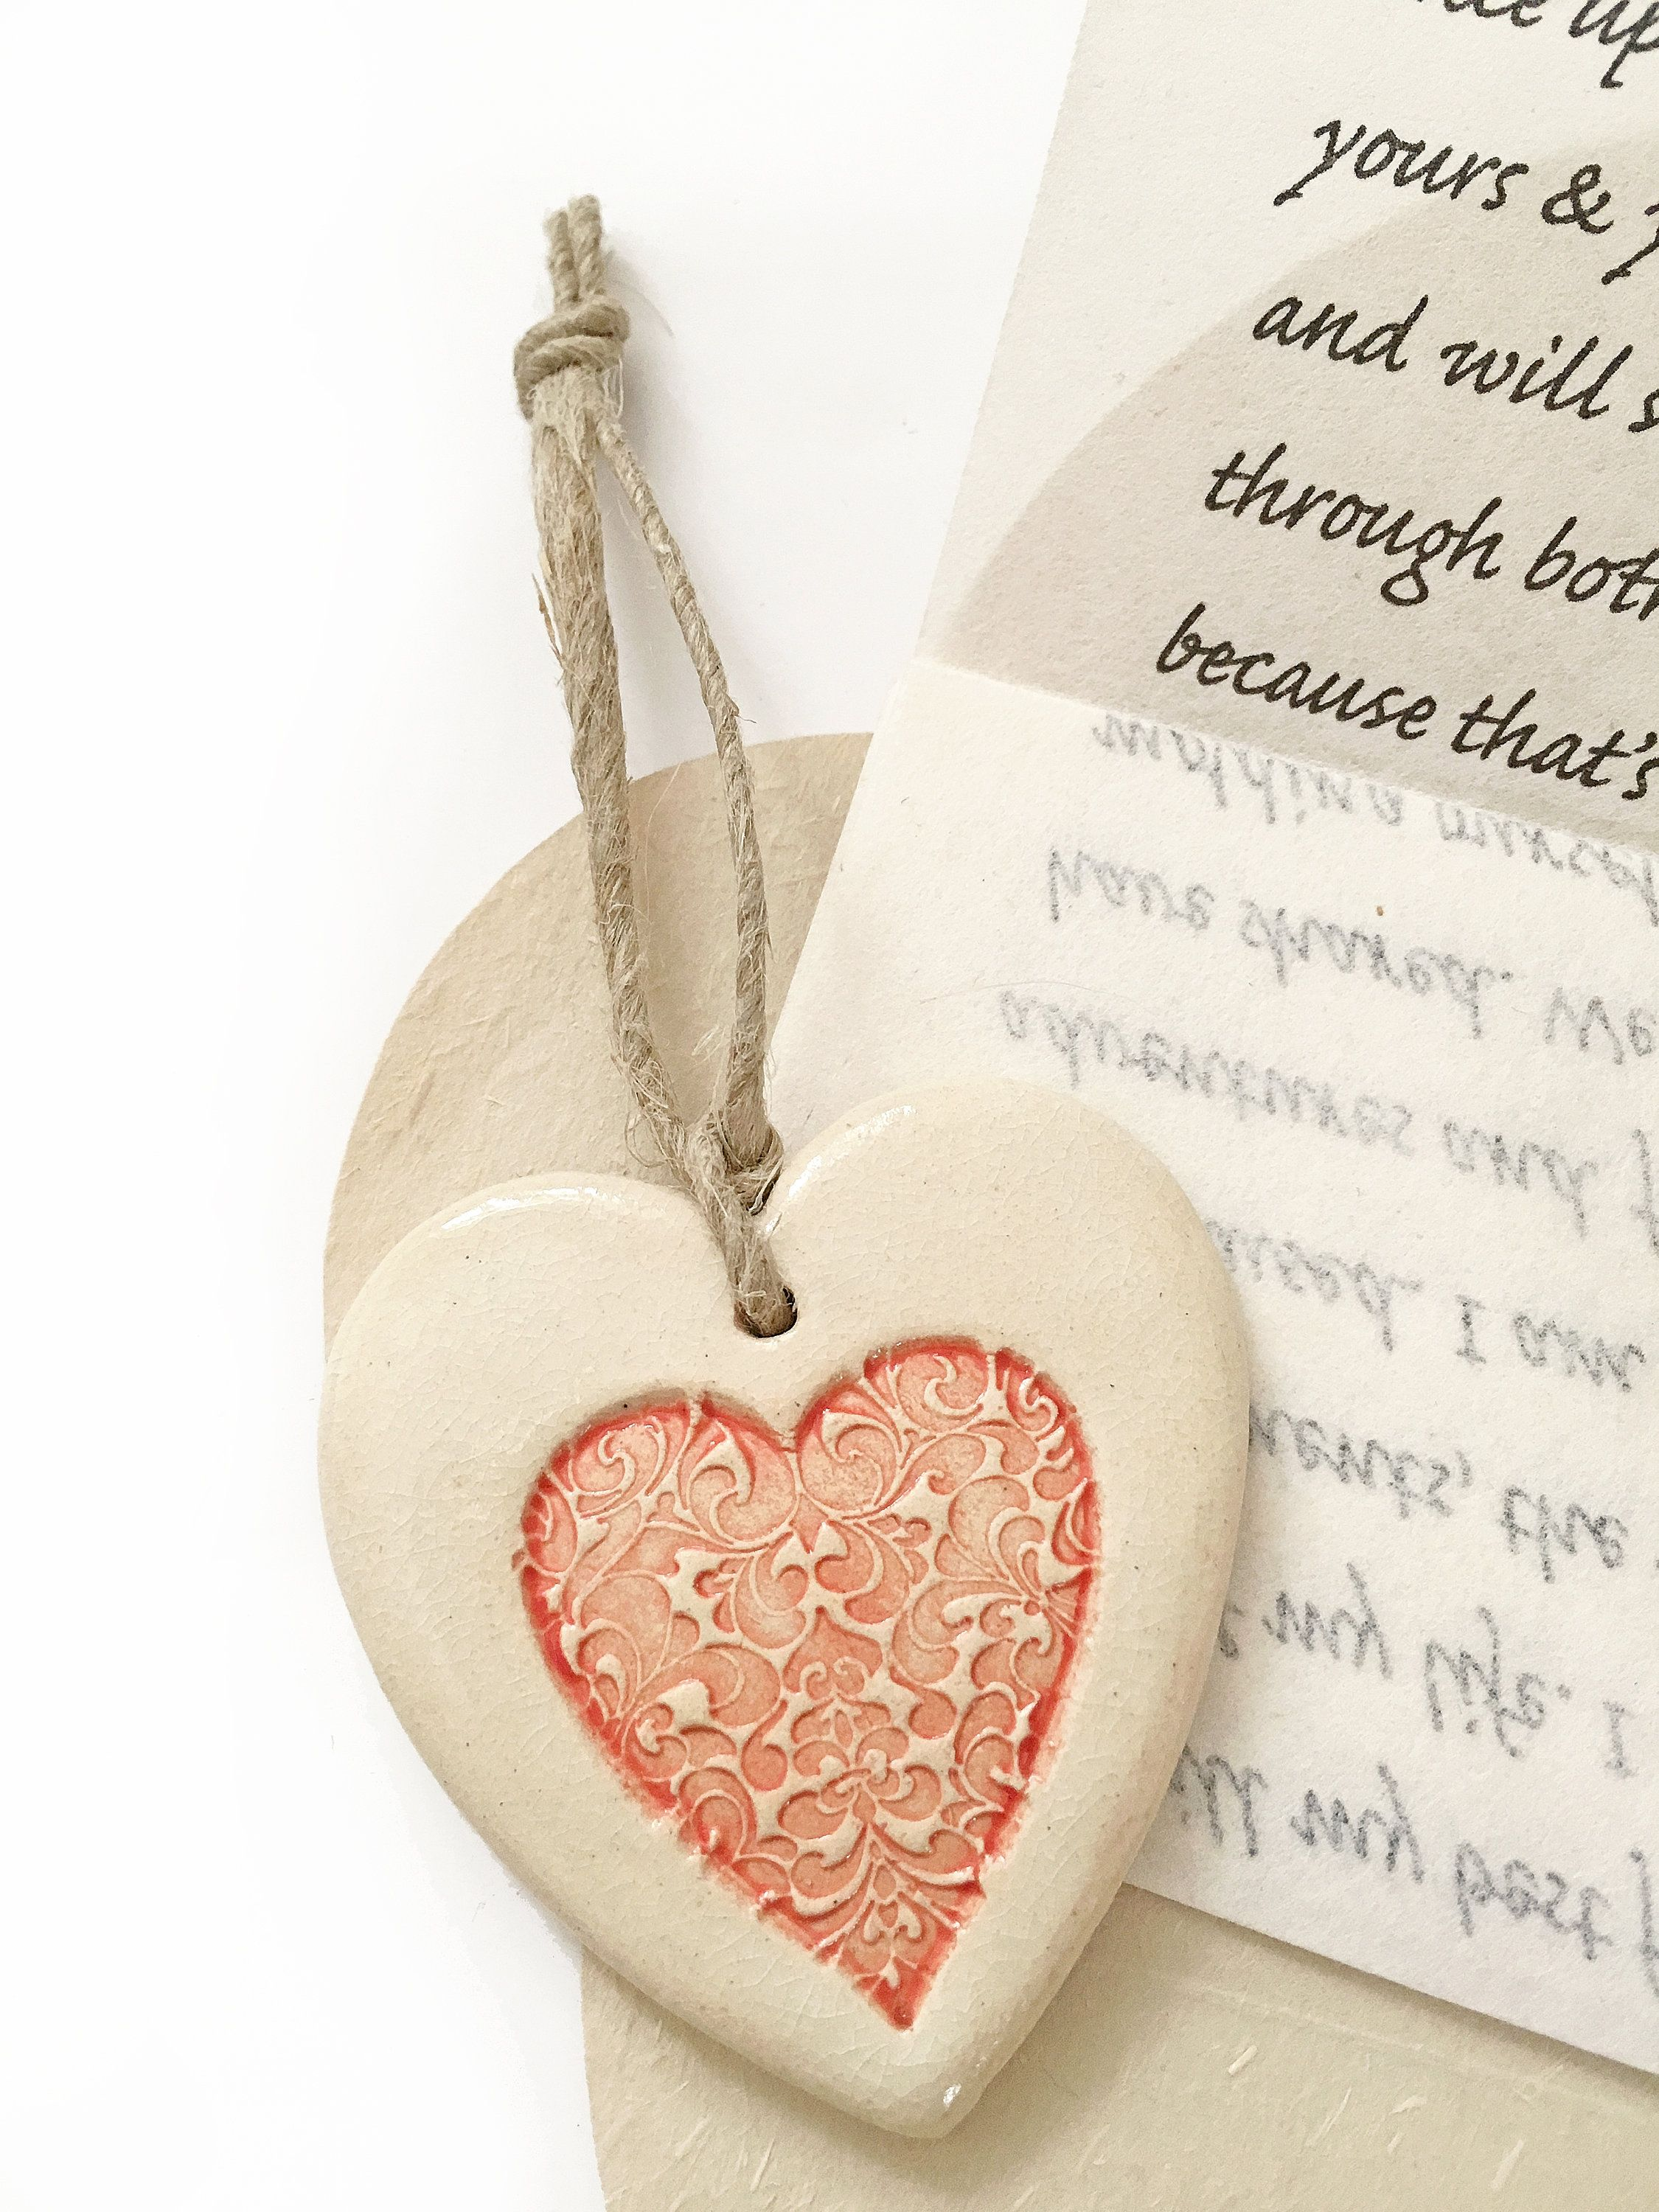 Meaningful 1 Year Anniversary Gift For Wife Who Has It All Sentimental Anniversary Gift For Girlfriend Love Letter Ceramic Heart Ornament In 2020 1 Year Anniversary Gifts Girlfriend Gifts Anniversary Gifts For Wife